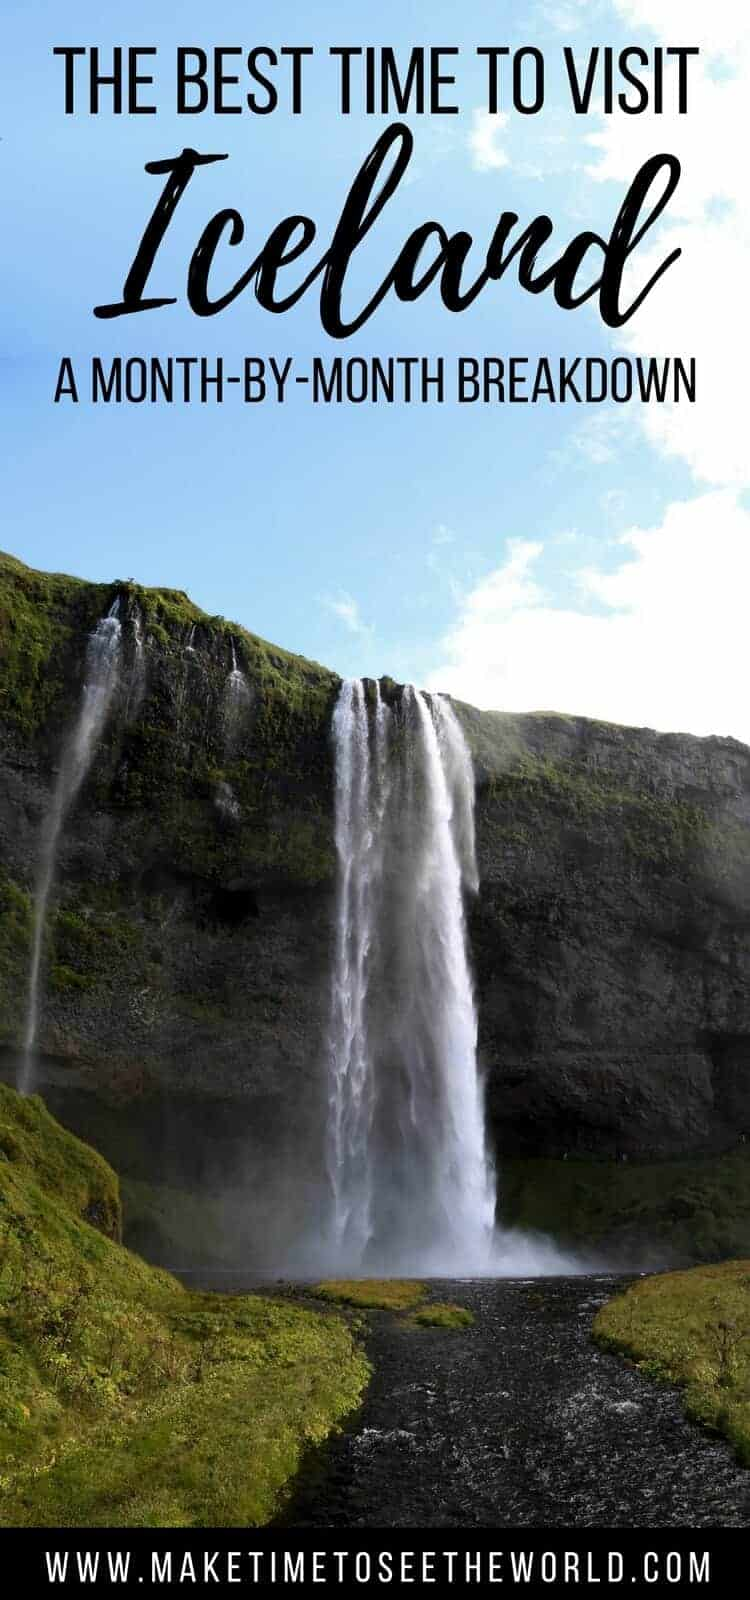 The Best Time To Visit Iceland - A Season by Season Guide